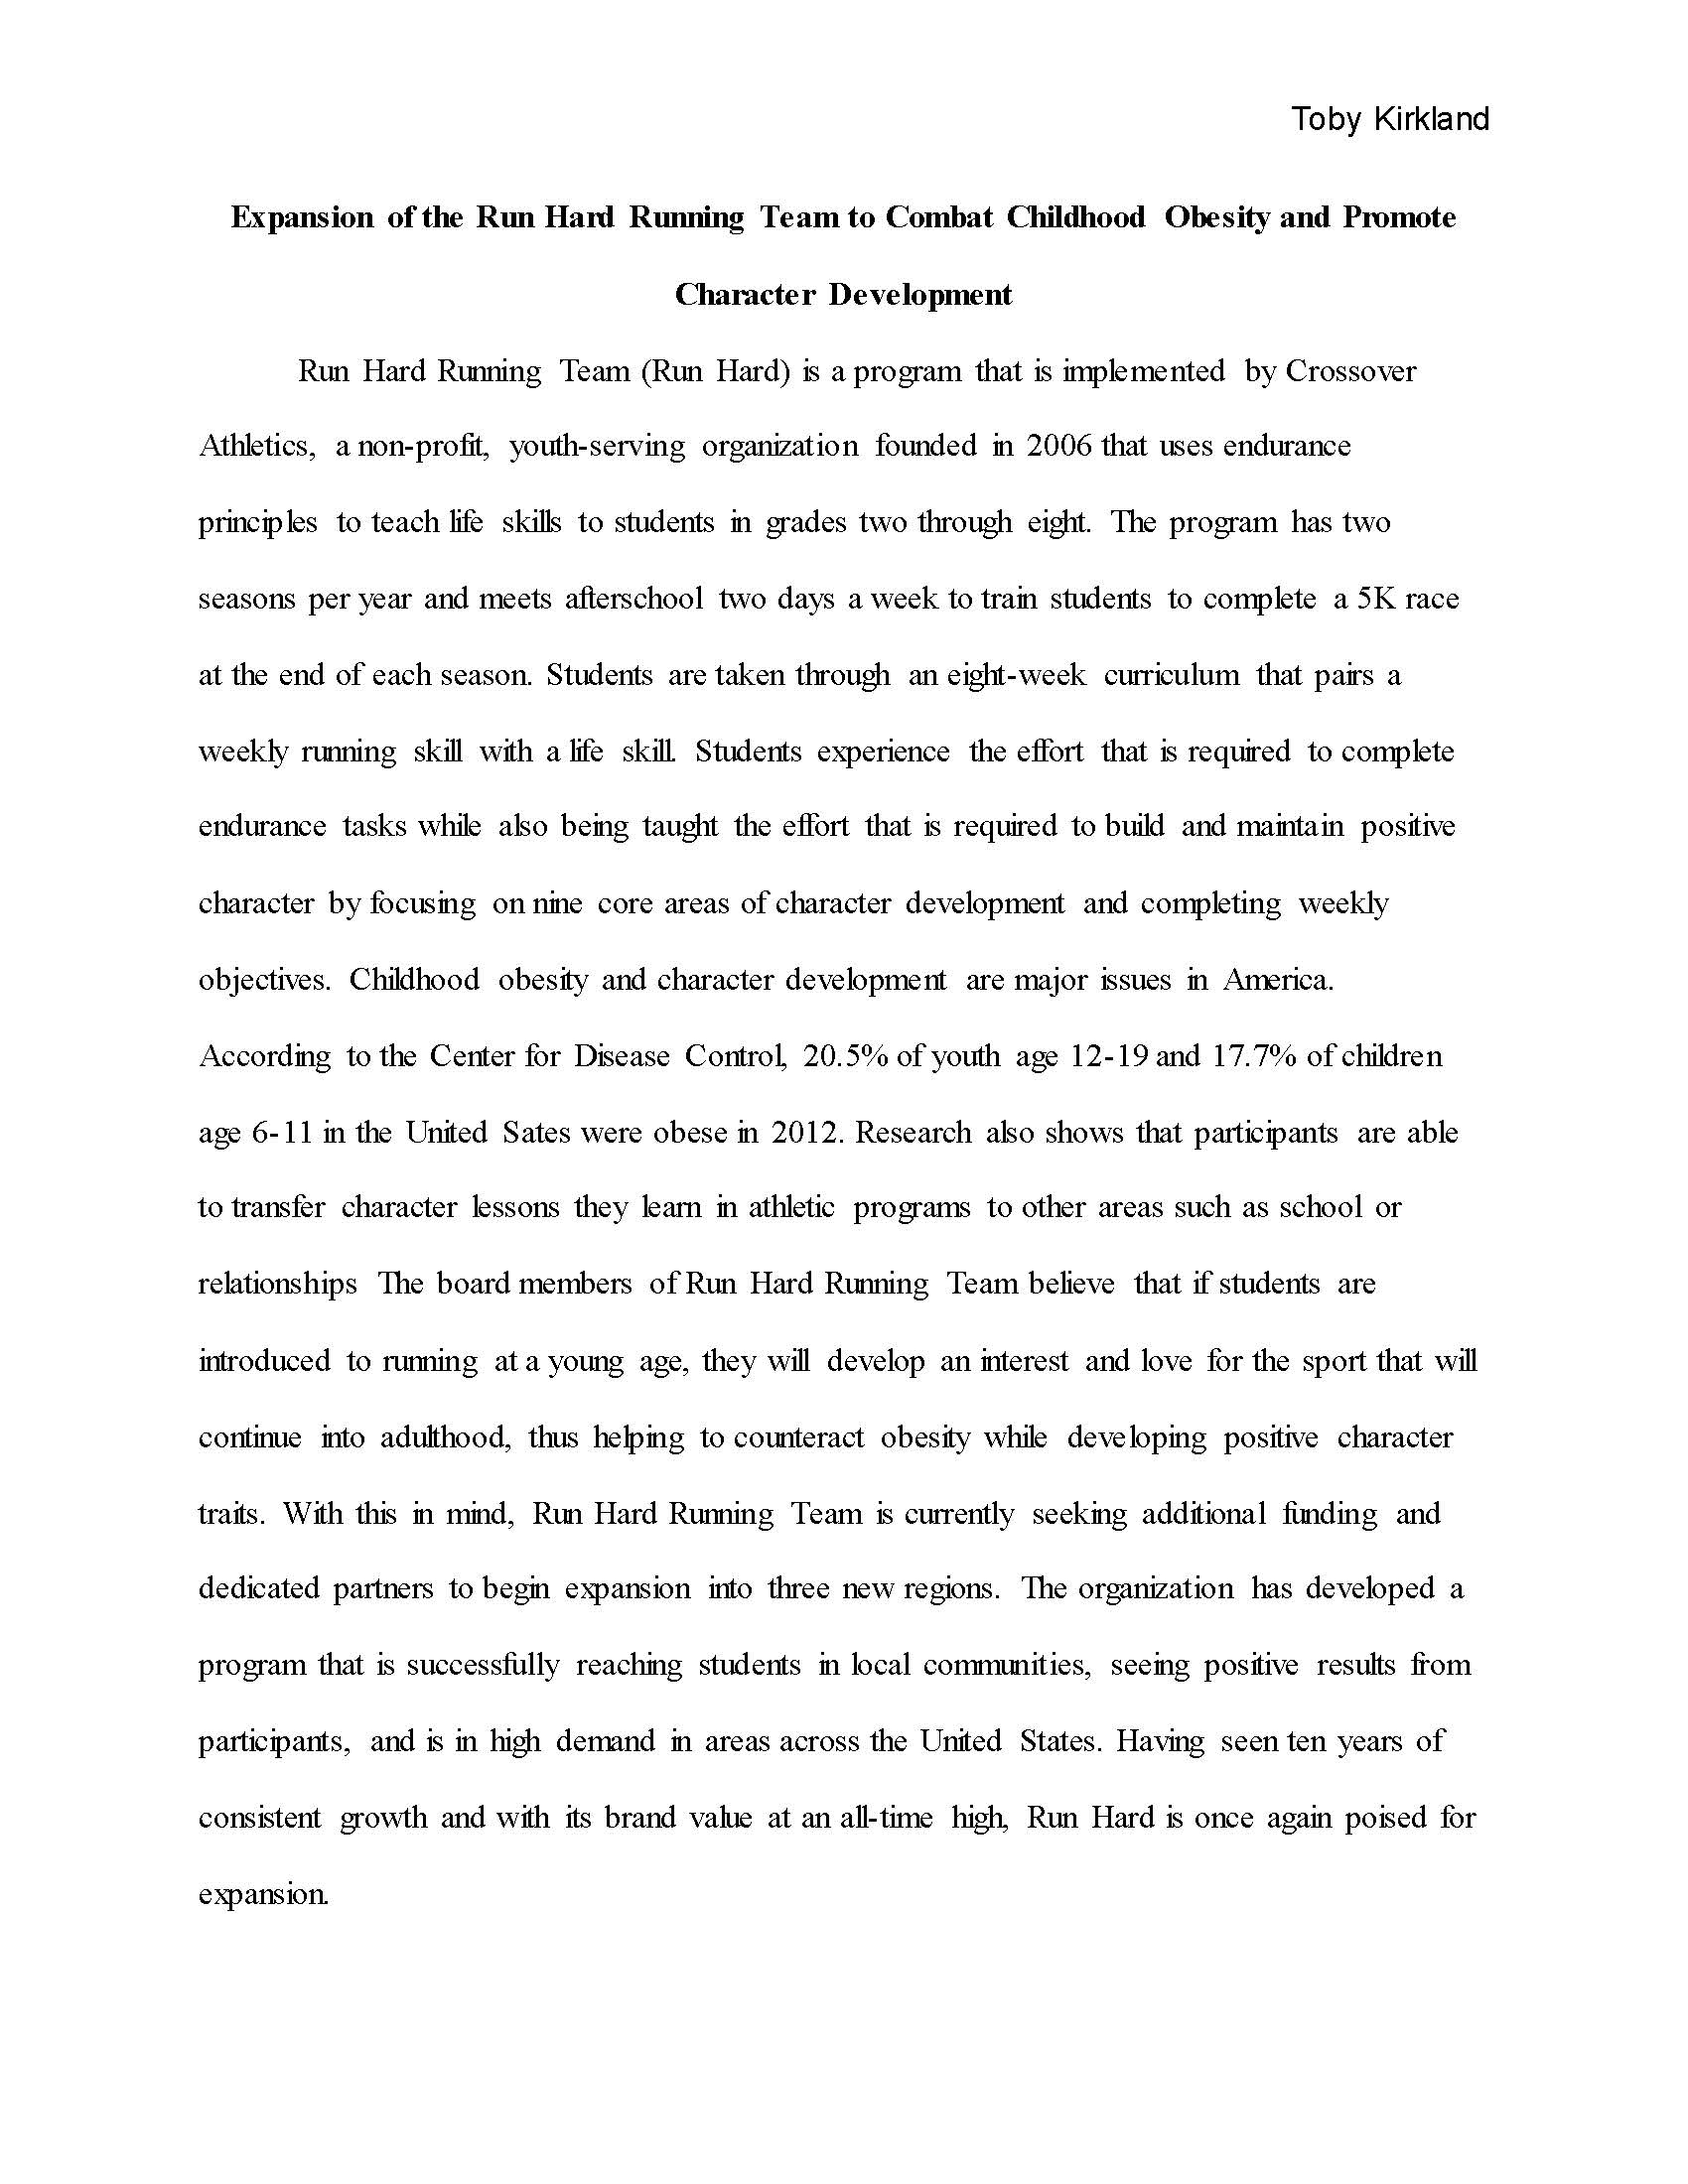 002 Research Paper Papers On Childhood Obesity Toby Kirkland Final Grant Proposal Page 01 Fantastic Studies Argumentative In India Full